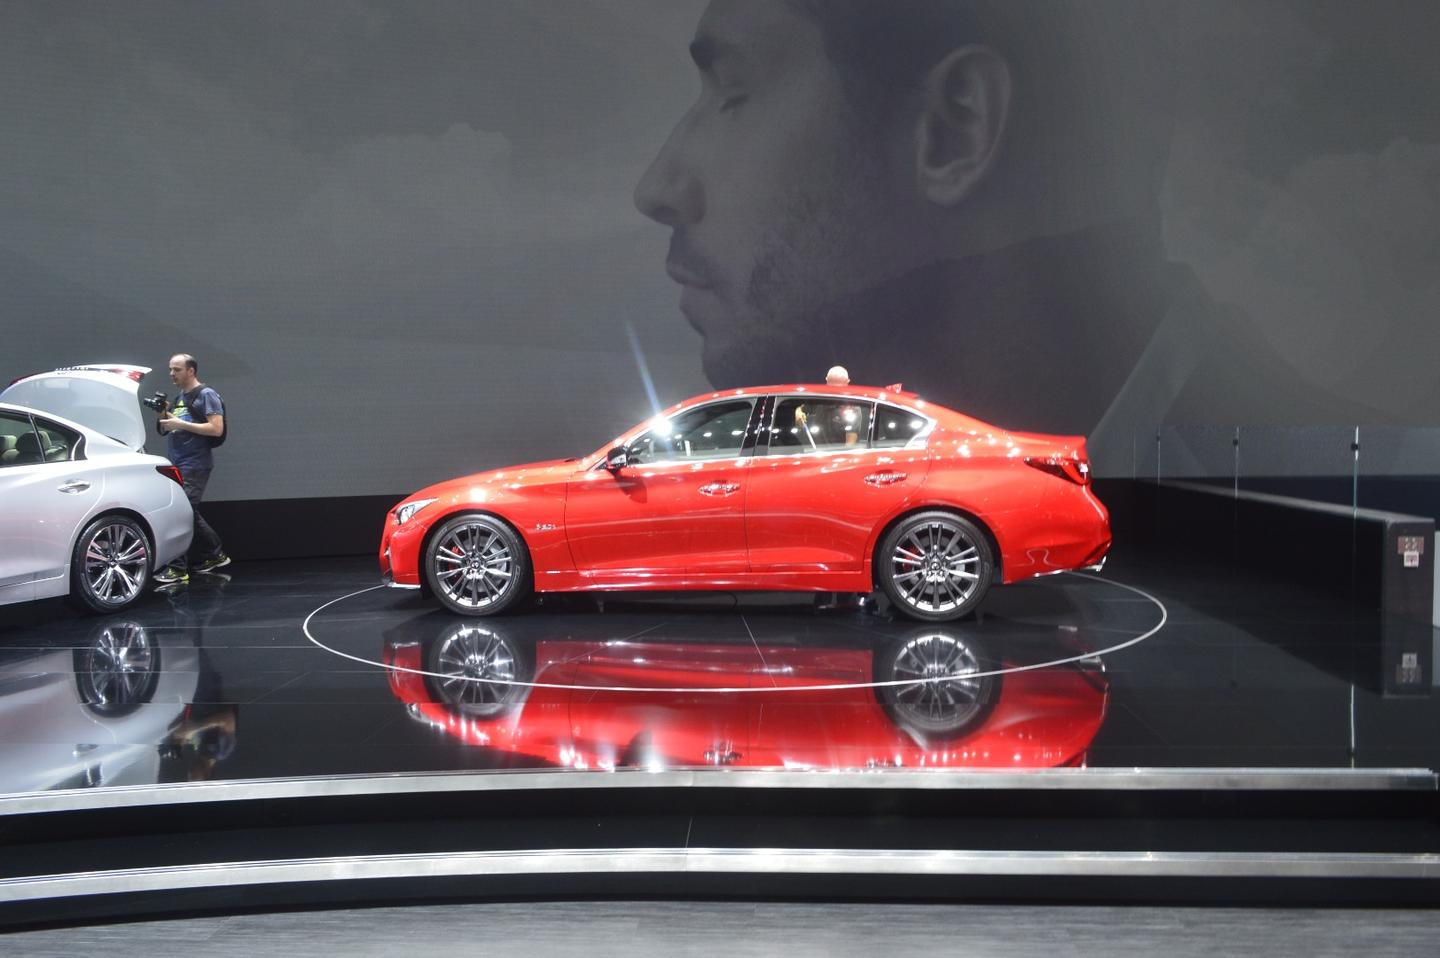 With the new 2018 Infiniti Q50, we get a refreshed exterior, some changes to the trim level lineup, and a continuation of the Red Sport performance model